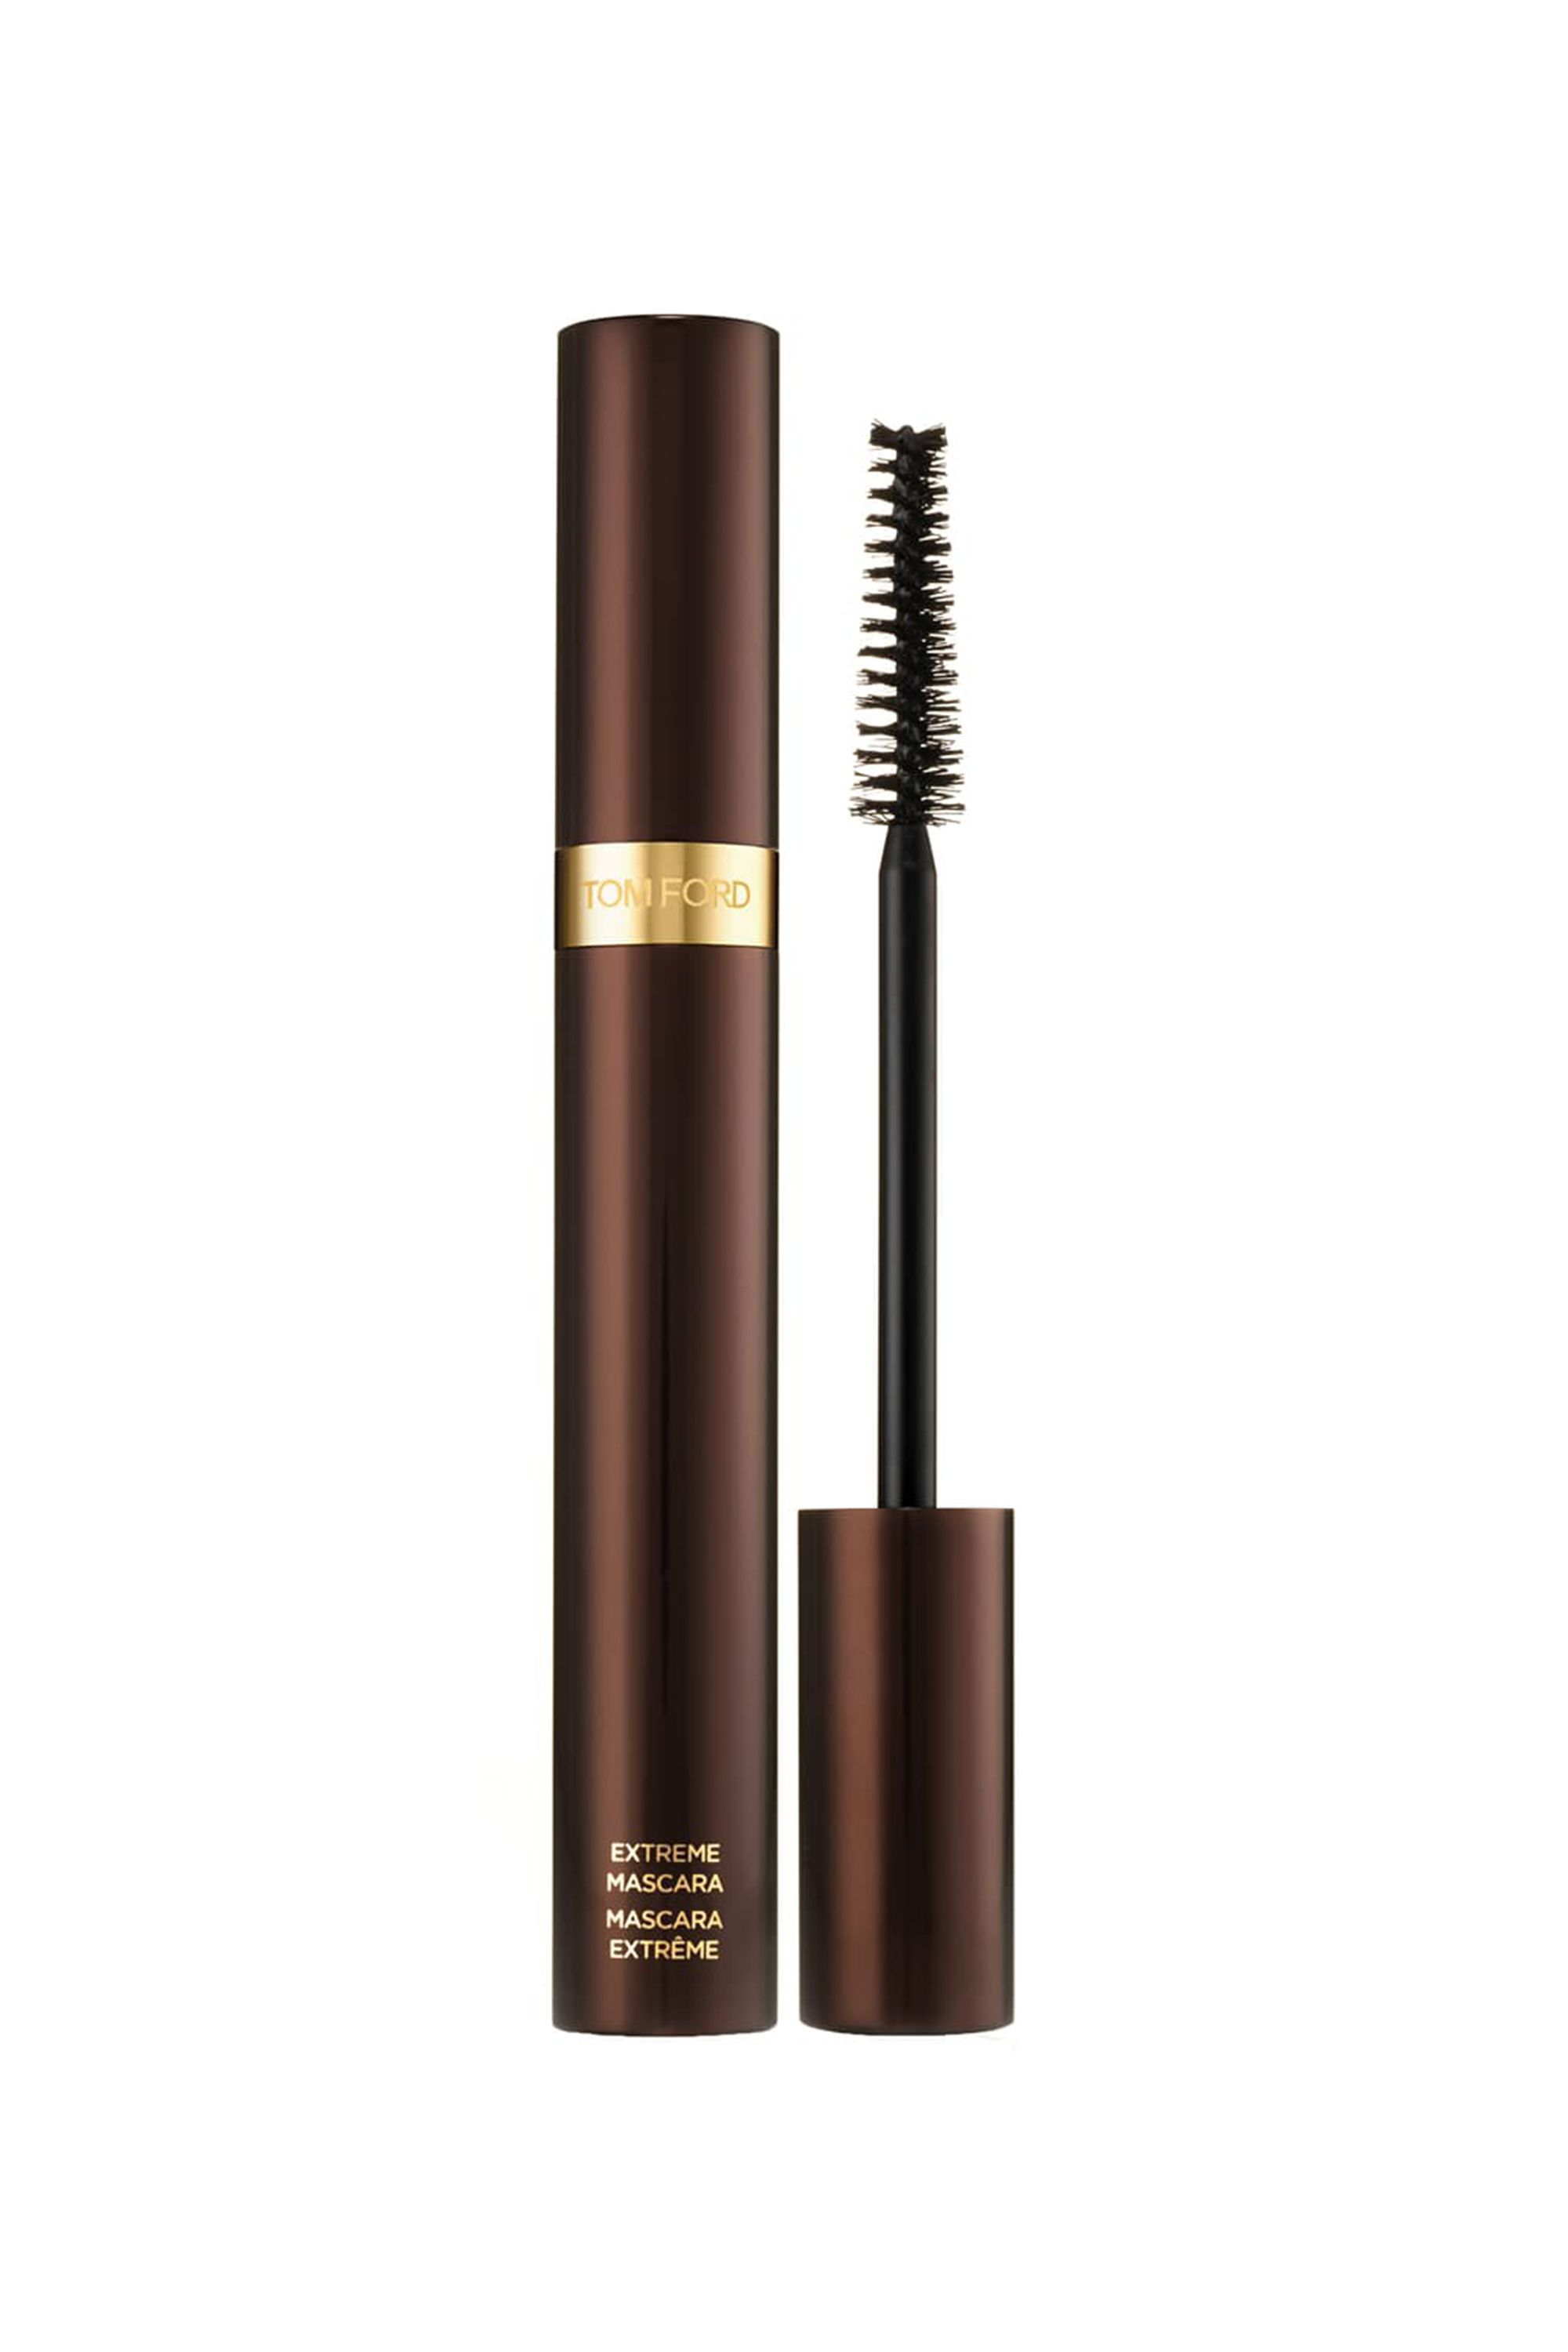 """Extreme Mascara Tom Ford tomford.com $46.00 SHOP NOW """"This is the best mascara I've ever used. It turns me into a mix of Diana Ross and Twiggy after a few strokes. The brush separates and lengthens every single lash."""" — Justine Carreron, Market Editor"""